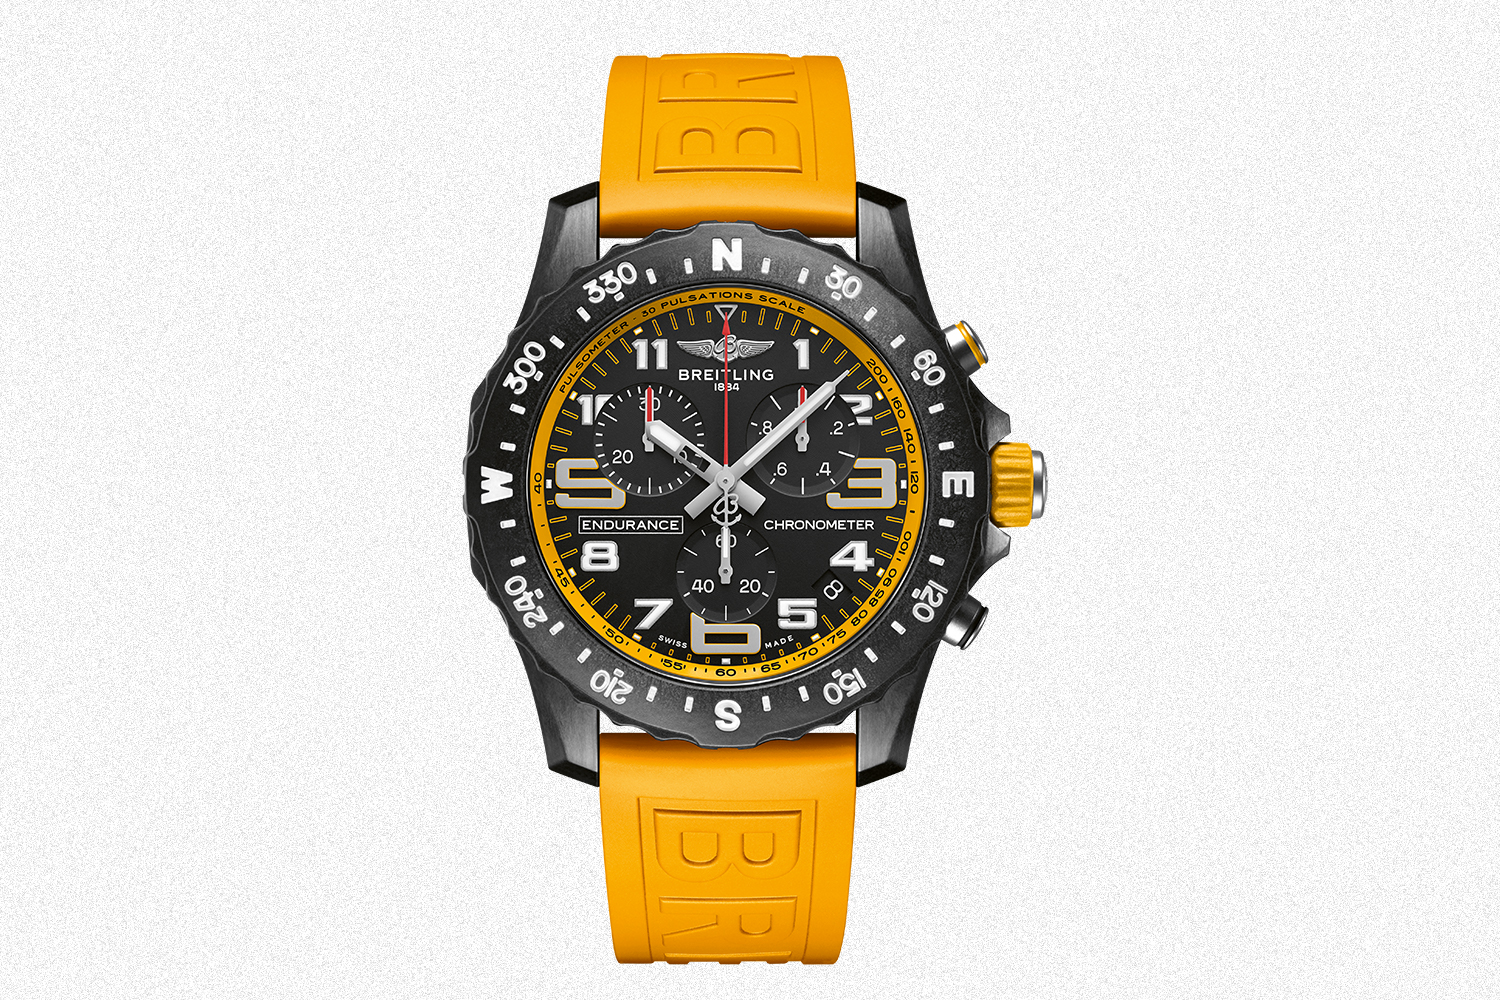 yellow Breitling Endurance Pro sports watch